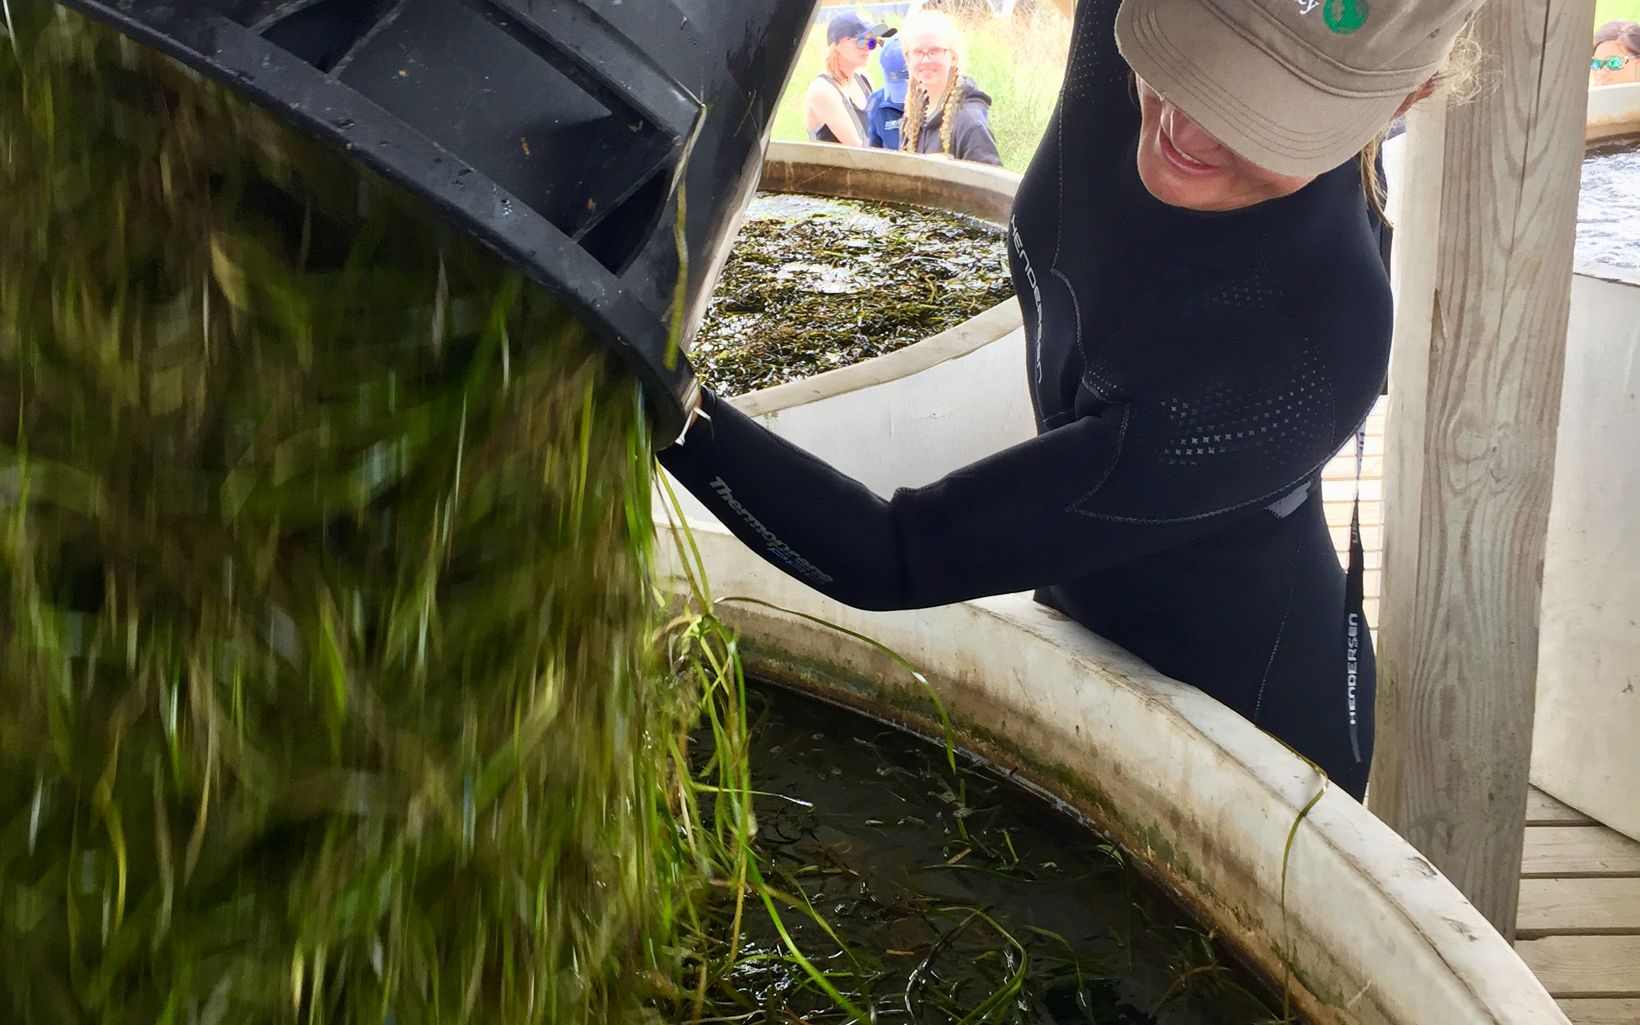 Eelgrass shoots are loaded into water tanks in Oyster, VA for storage and curing until the seeds are ready for fall planting.